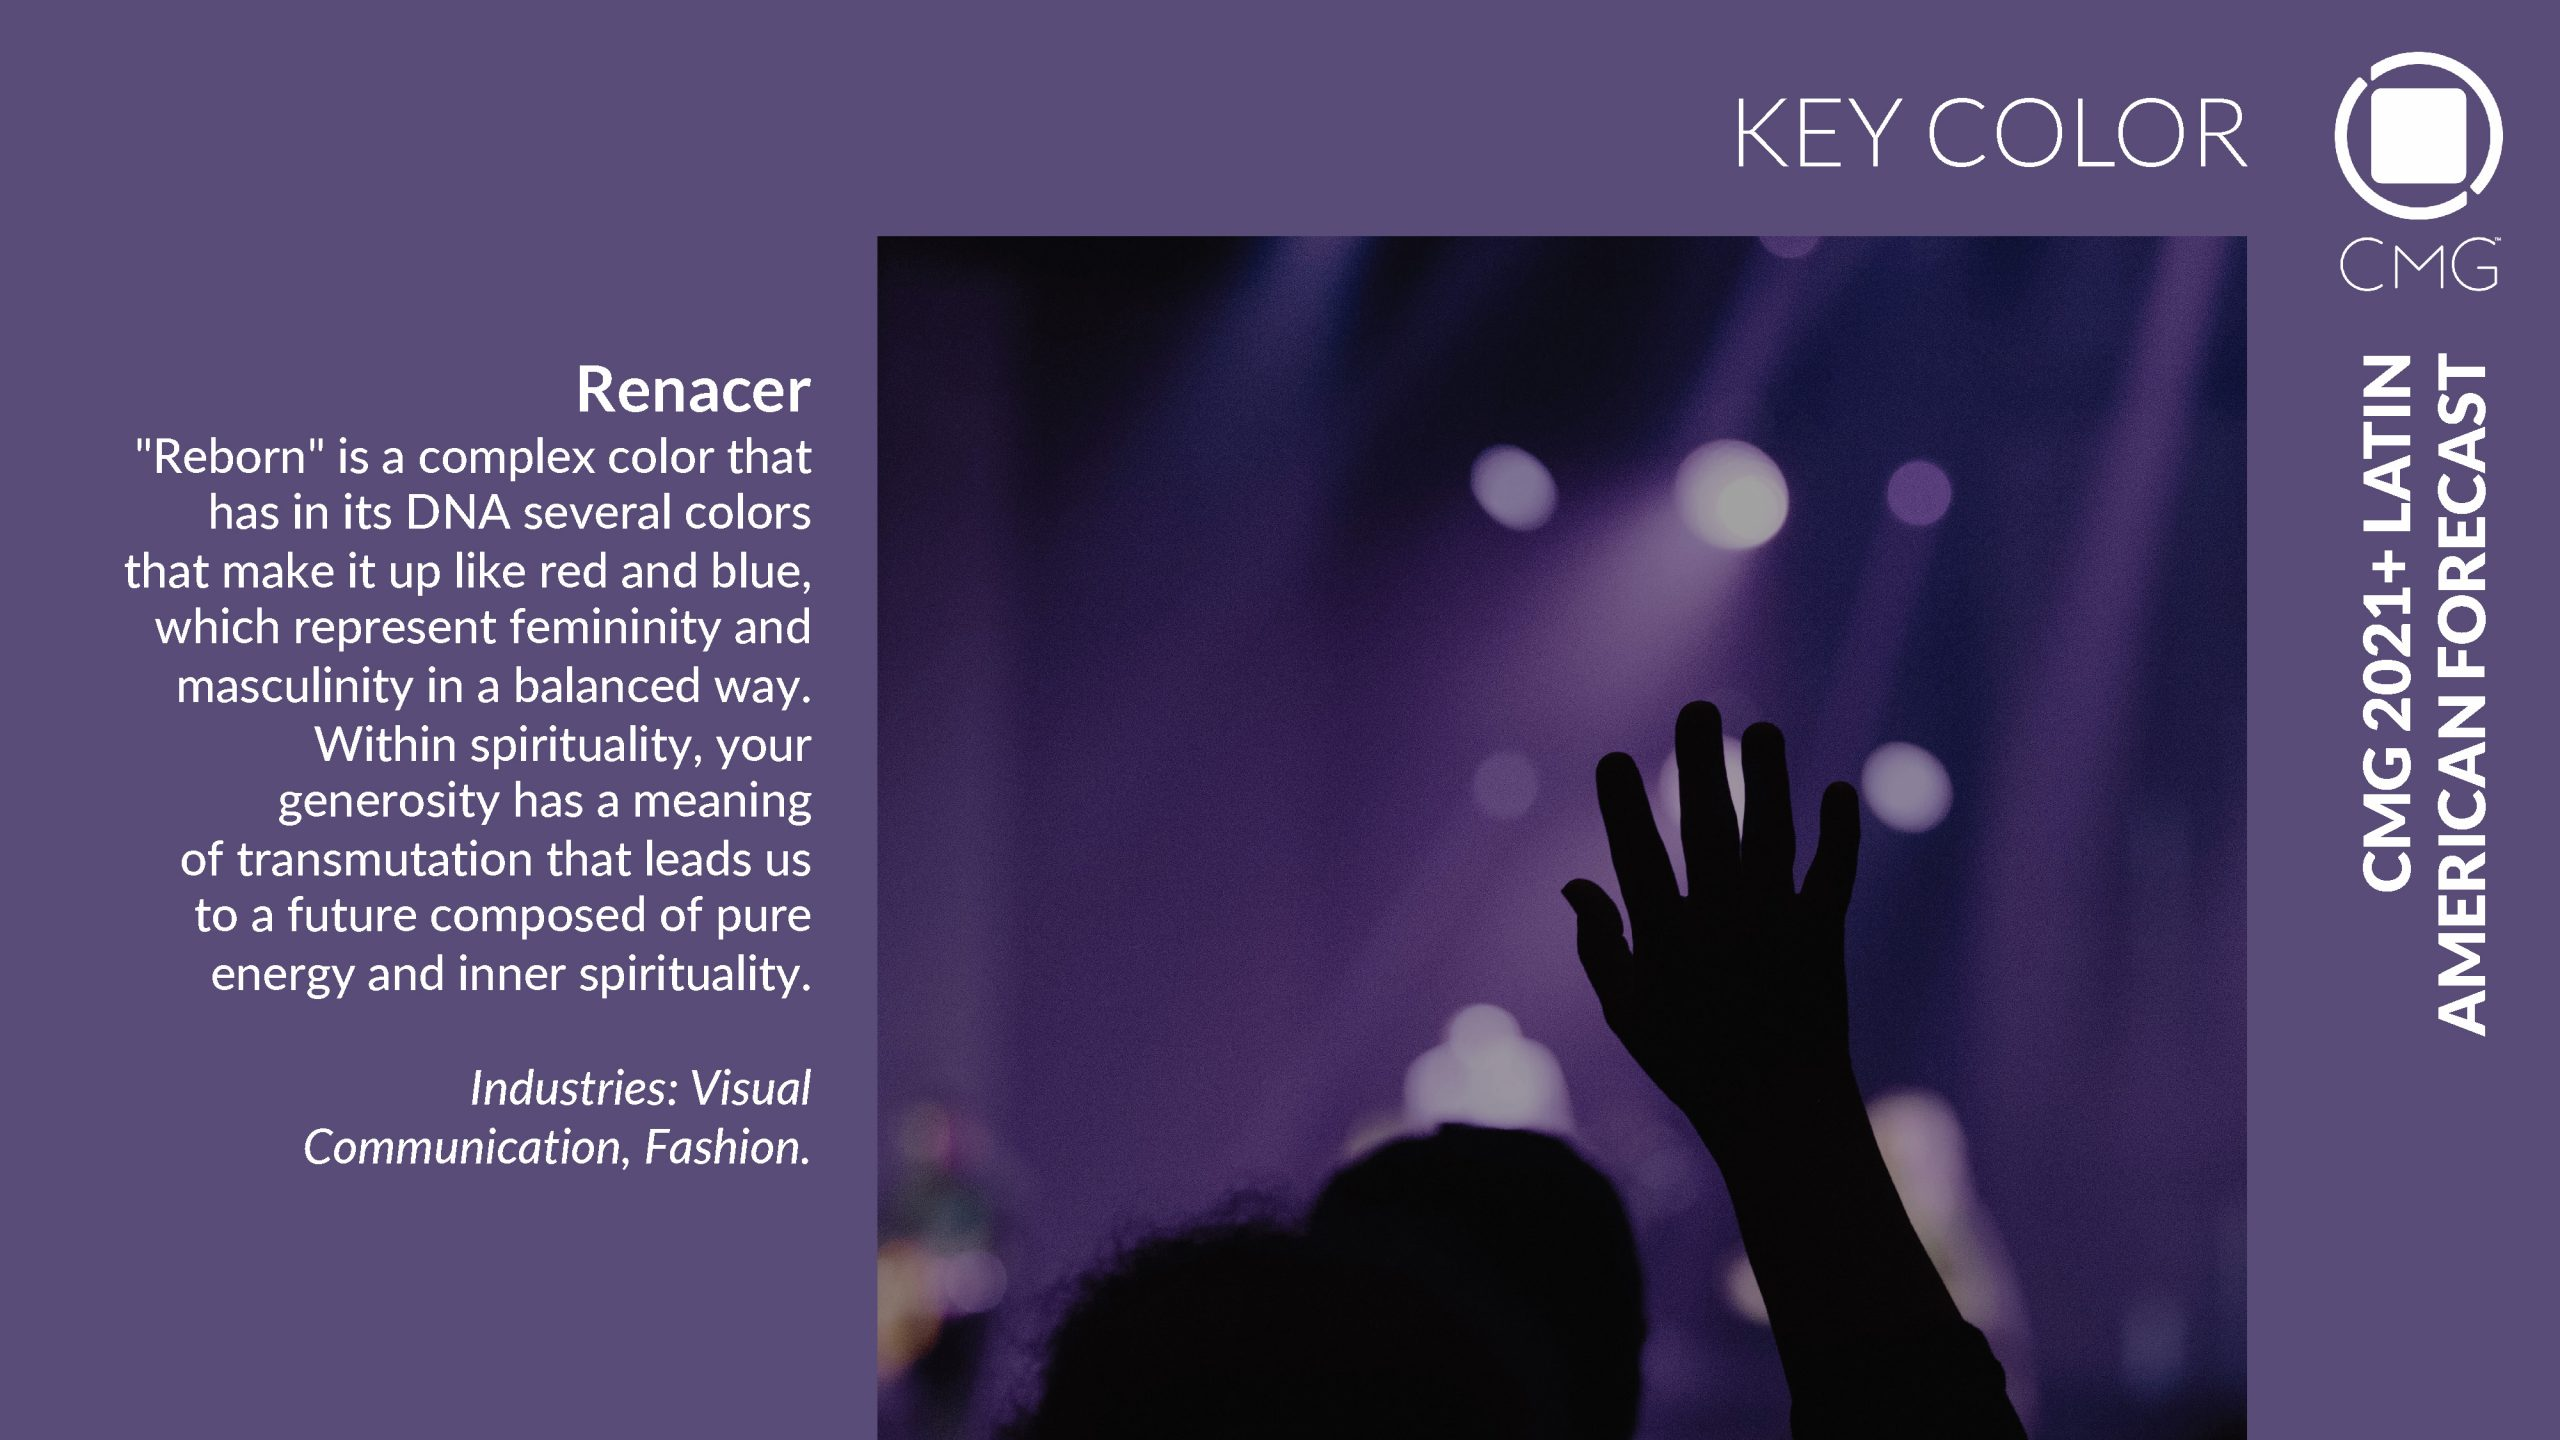 Cmg 2021 key color renacer